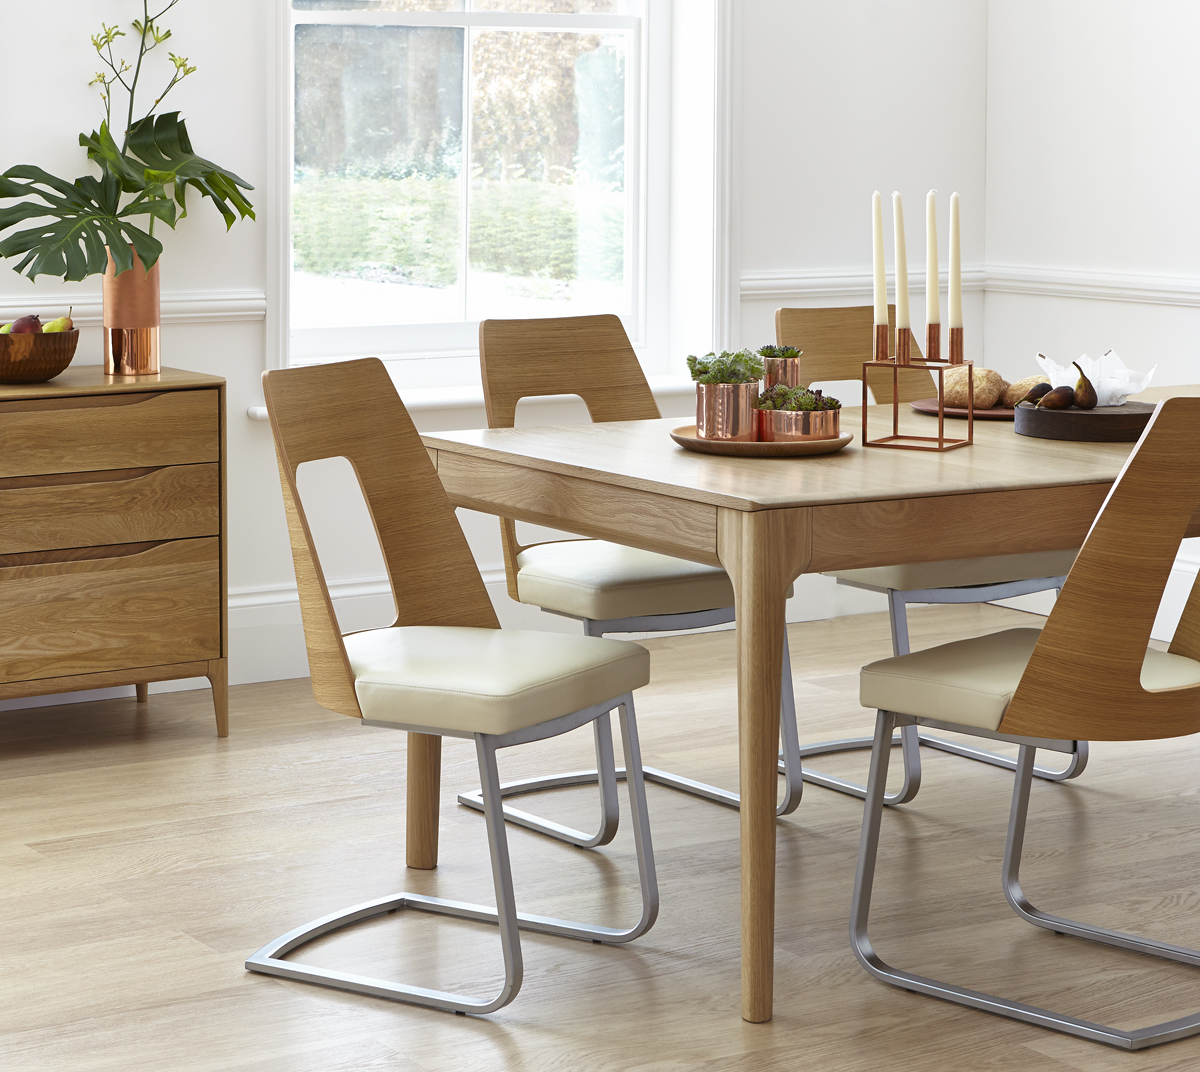 Ercol Romana Cantilevered Dining Chair Choice Furniture